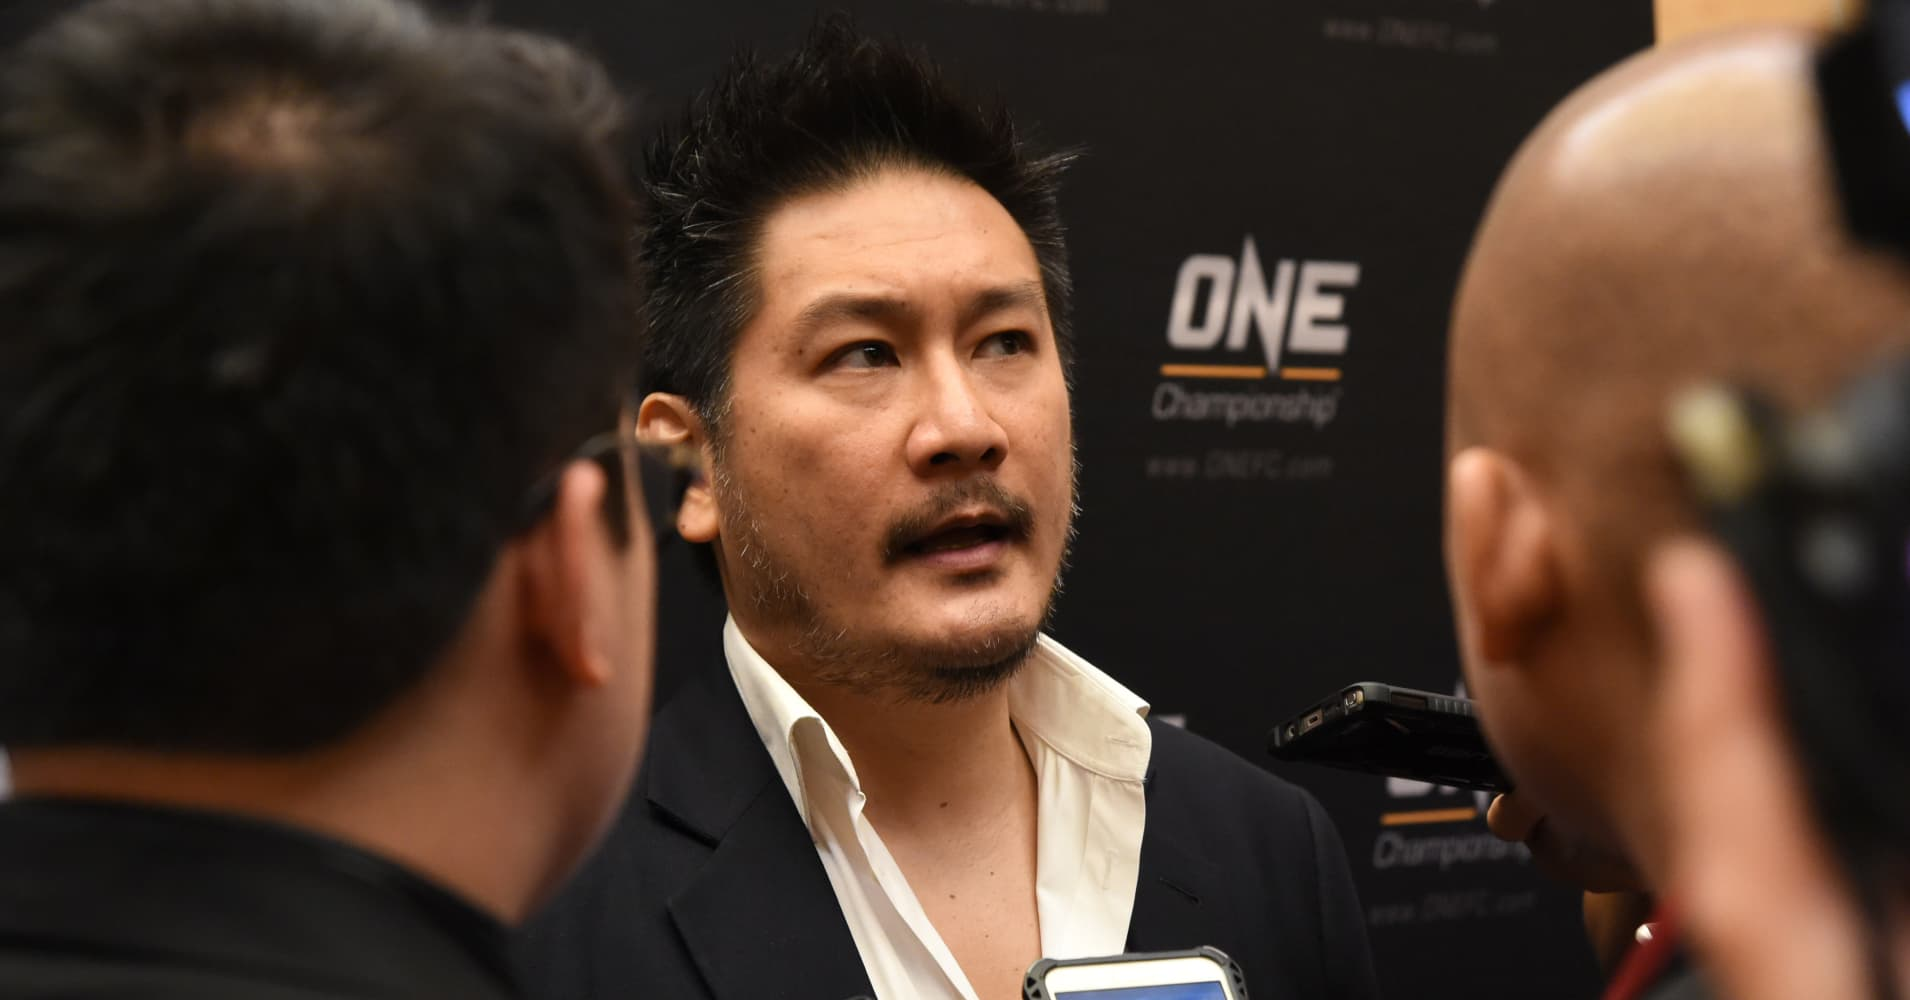 ONE Championship founder and chairman Chatri Sityodtong at the Asia MMA Summit 2016 in Singapore on September 22, 2016.